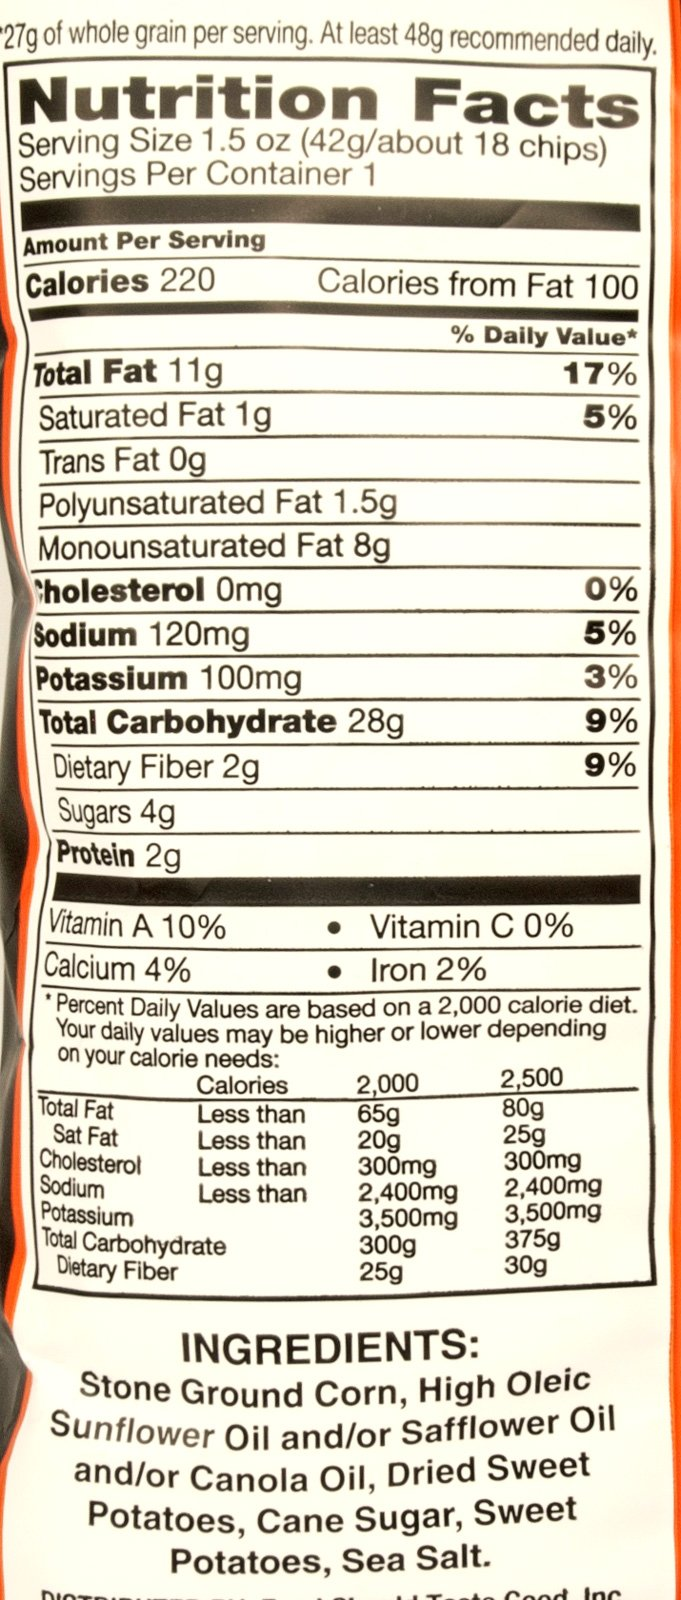 Food Should Taste Good Sweet Potato Tortilla Chips, 1.5 oz (Pack of 8) by Food Should Taste Good, Inc